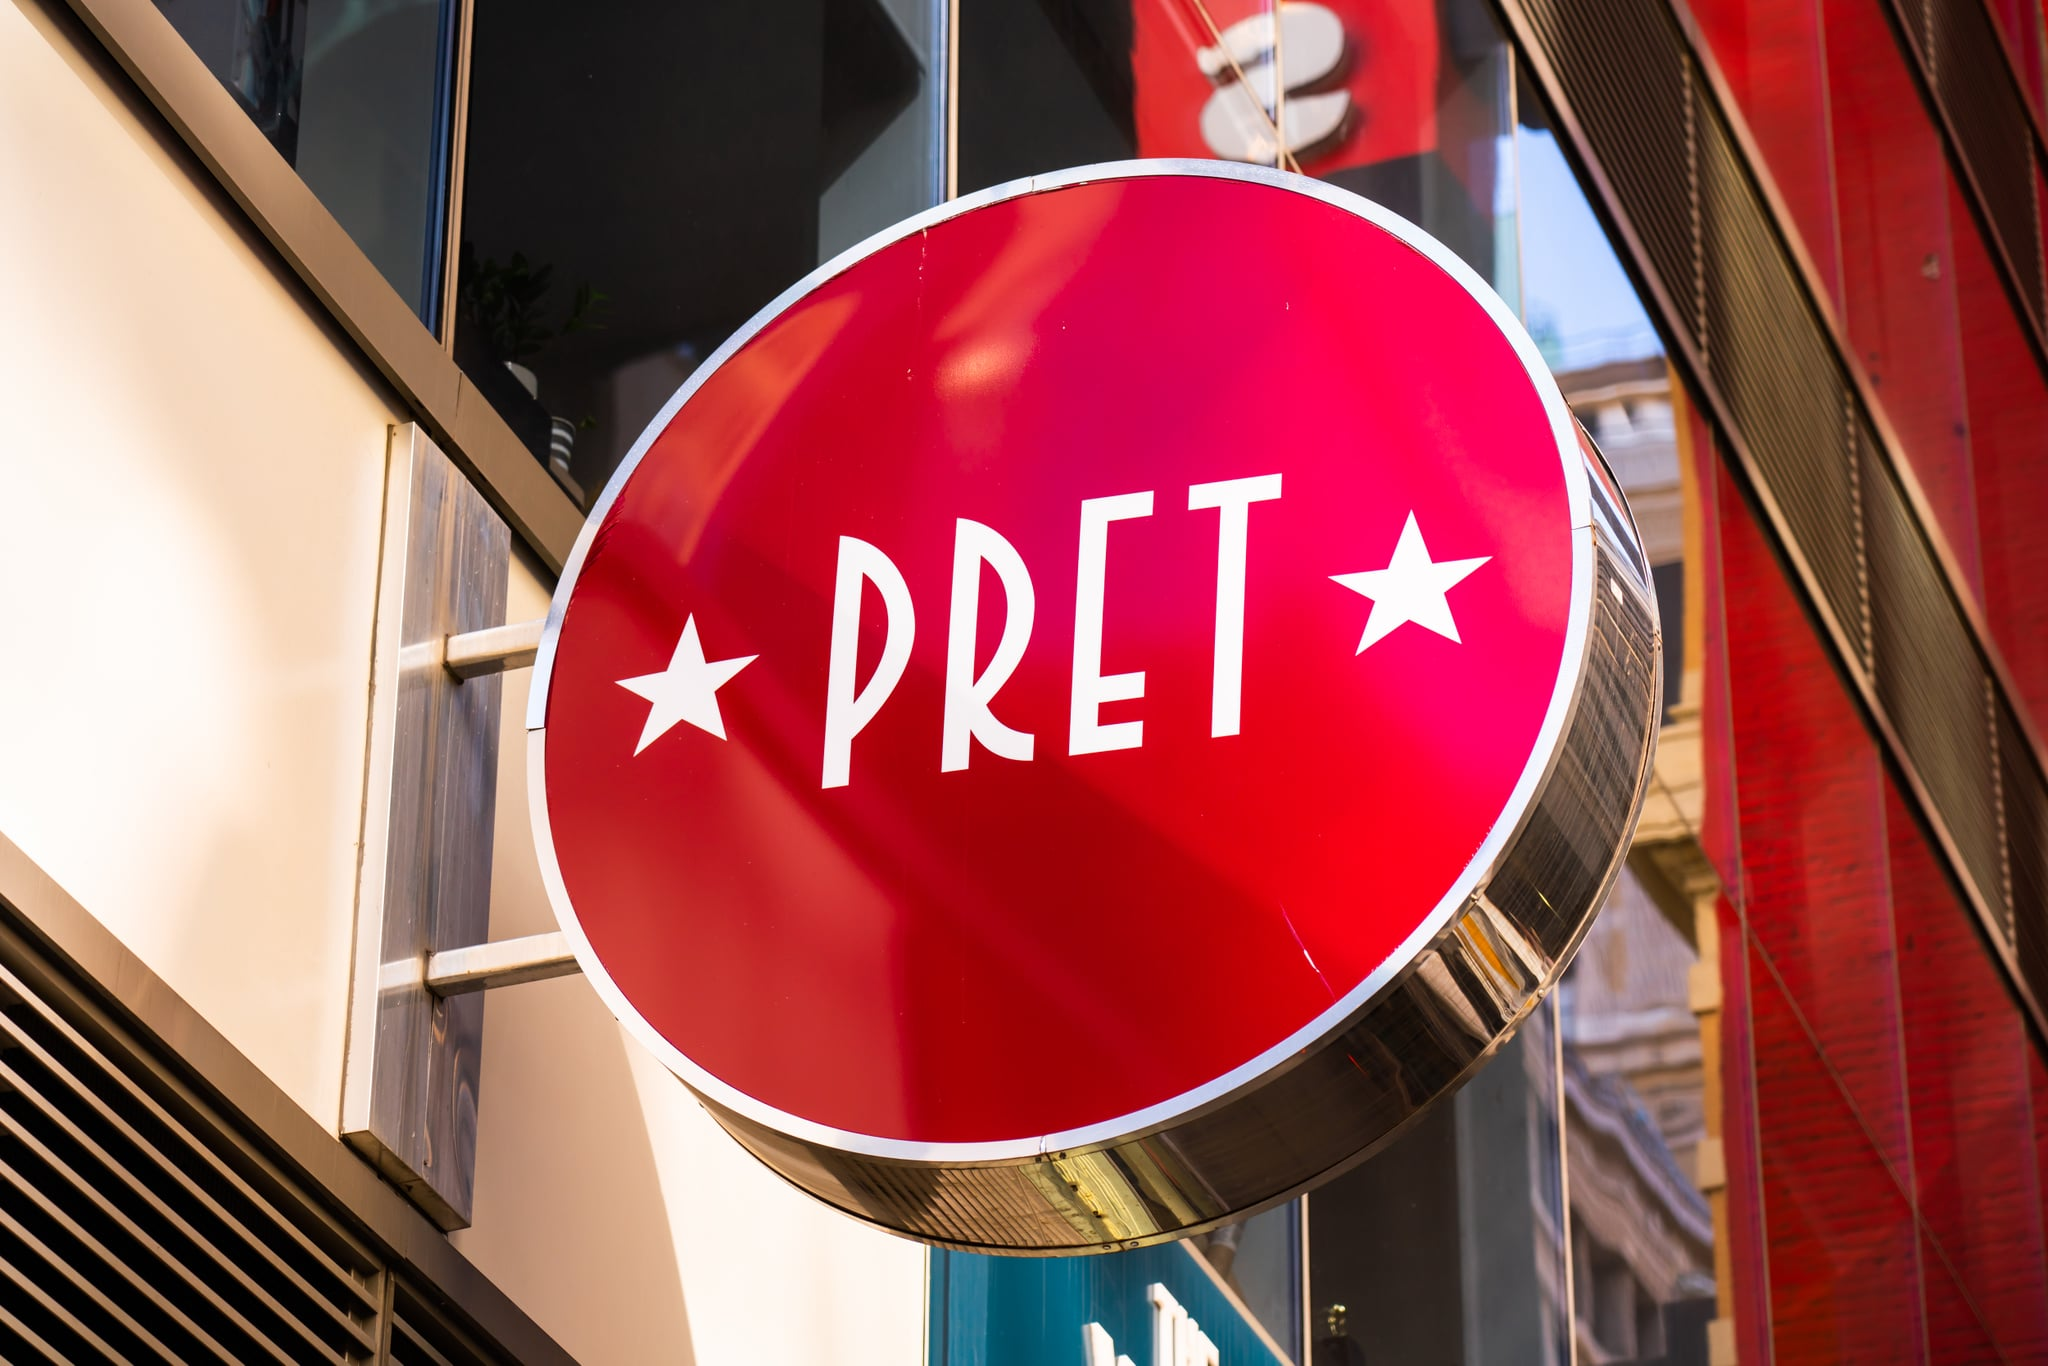 NEW YORK CITY, UNITED STATES - 2020/02/20: British sandwich shops chain, Pret A Manger logo seen in New York City. (Photo Illustration by Alex Tai/SOPA Images/LightRocket via Getty Images)